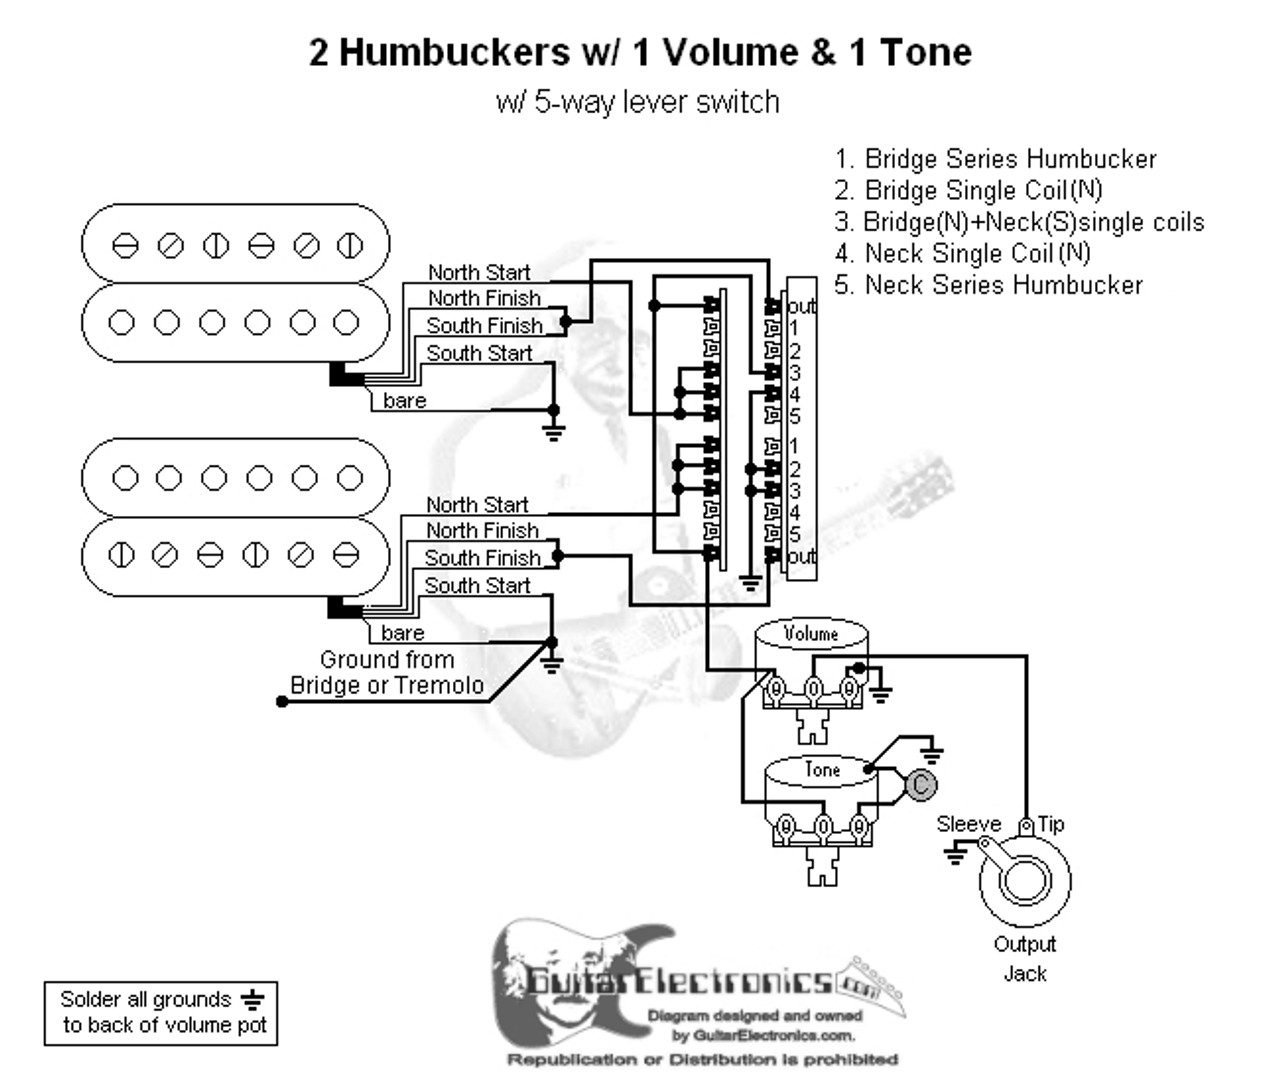 small resolution of 2 humbuckers 5 way lever switch 1 volume 1 tone 01 wiring diagram 2 humbuckers 5way lever switch 1 volume 1 tone 03